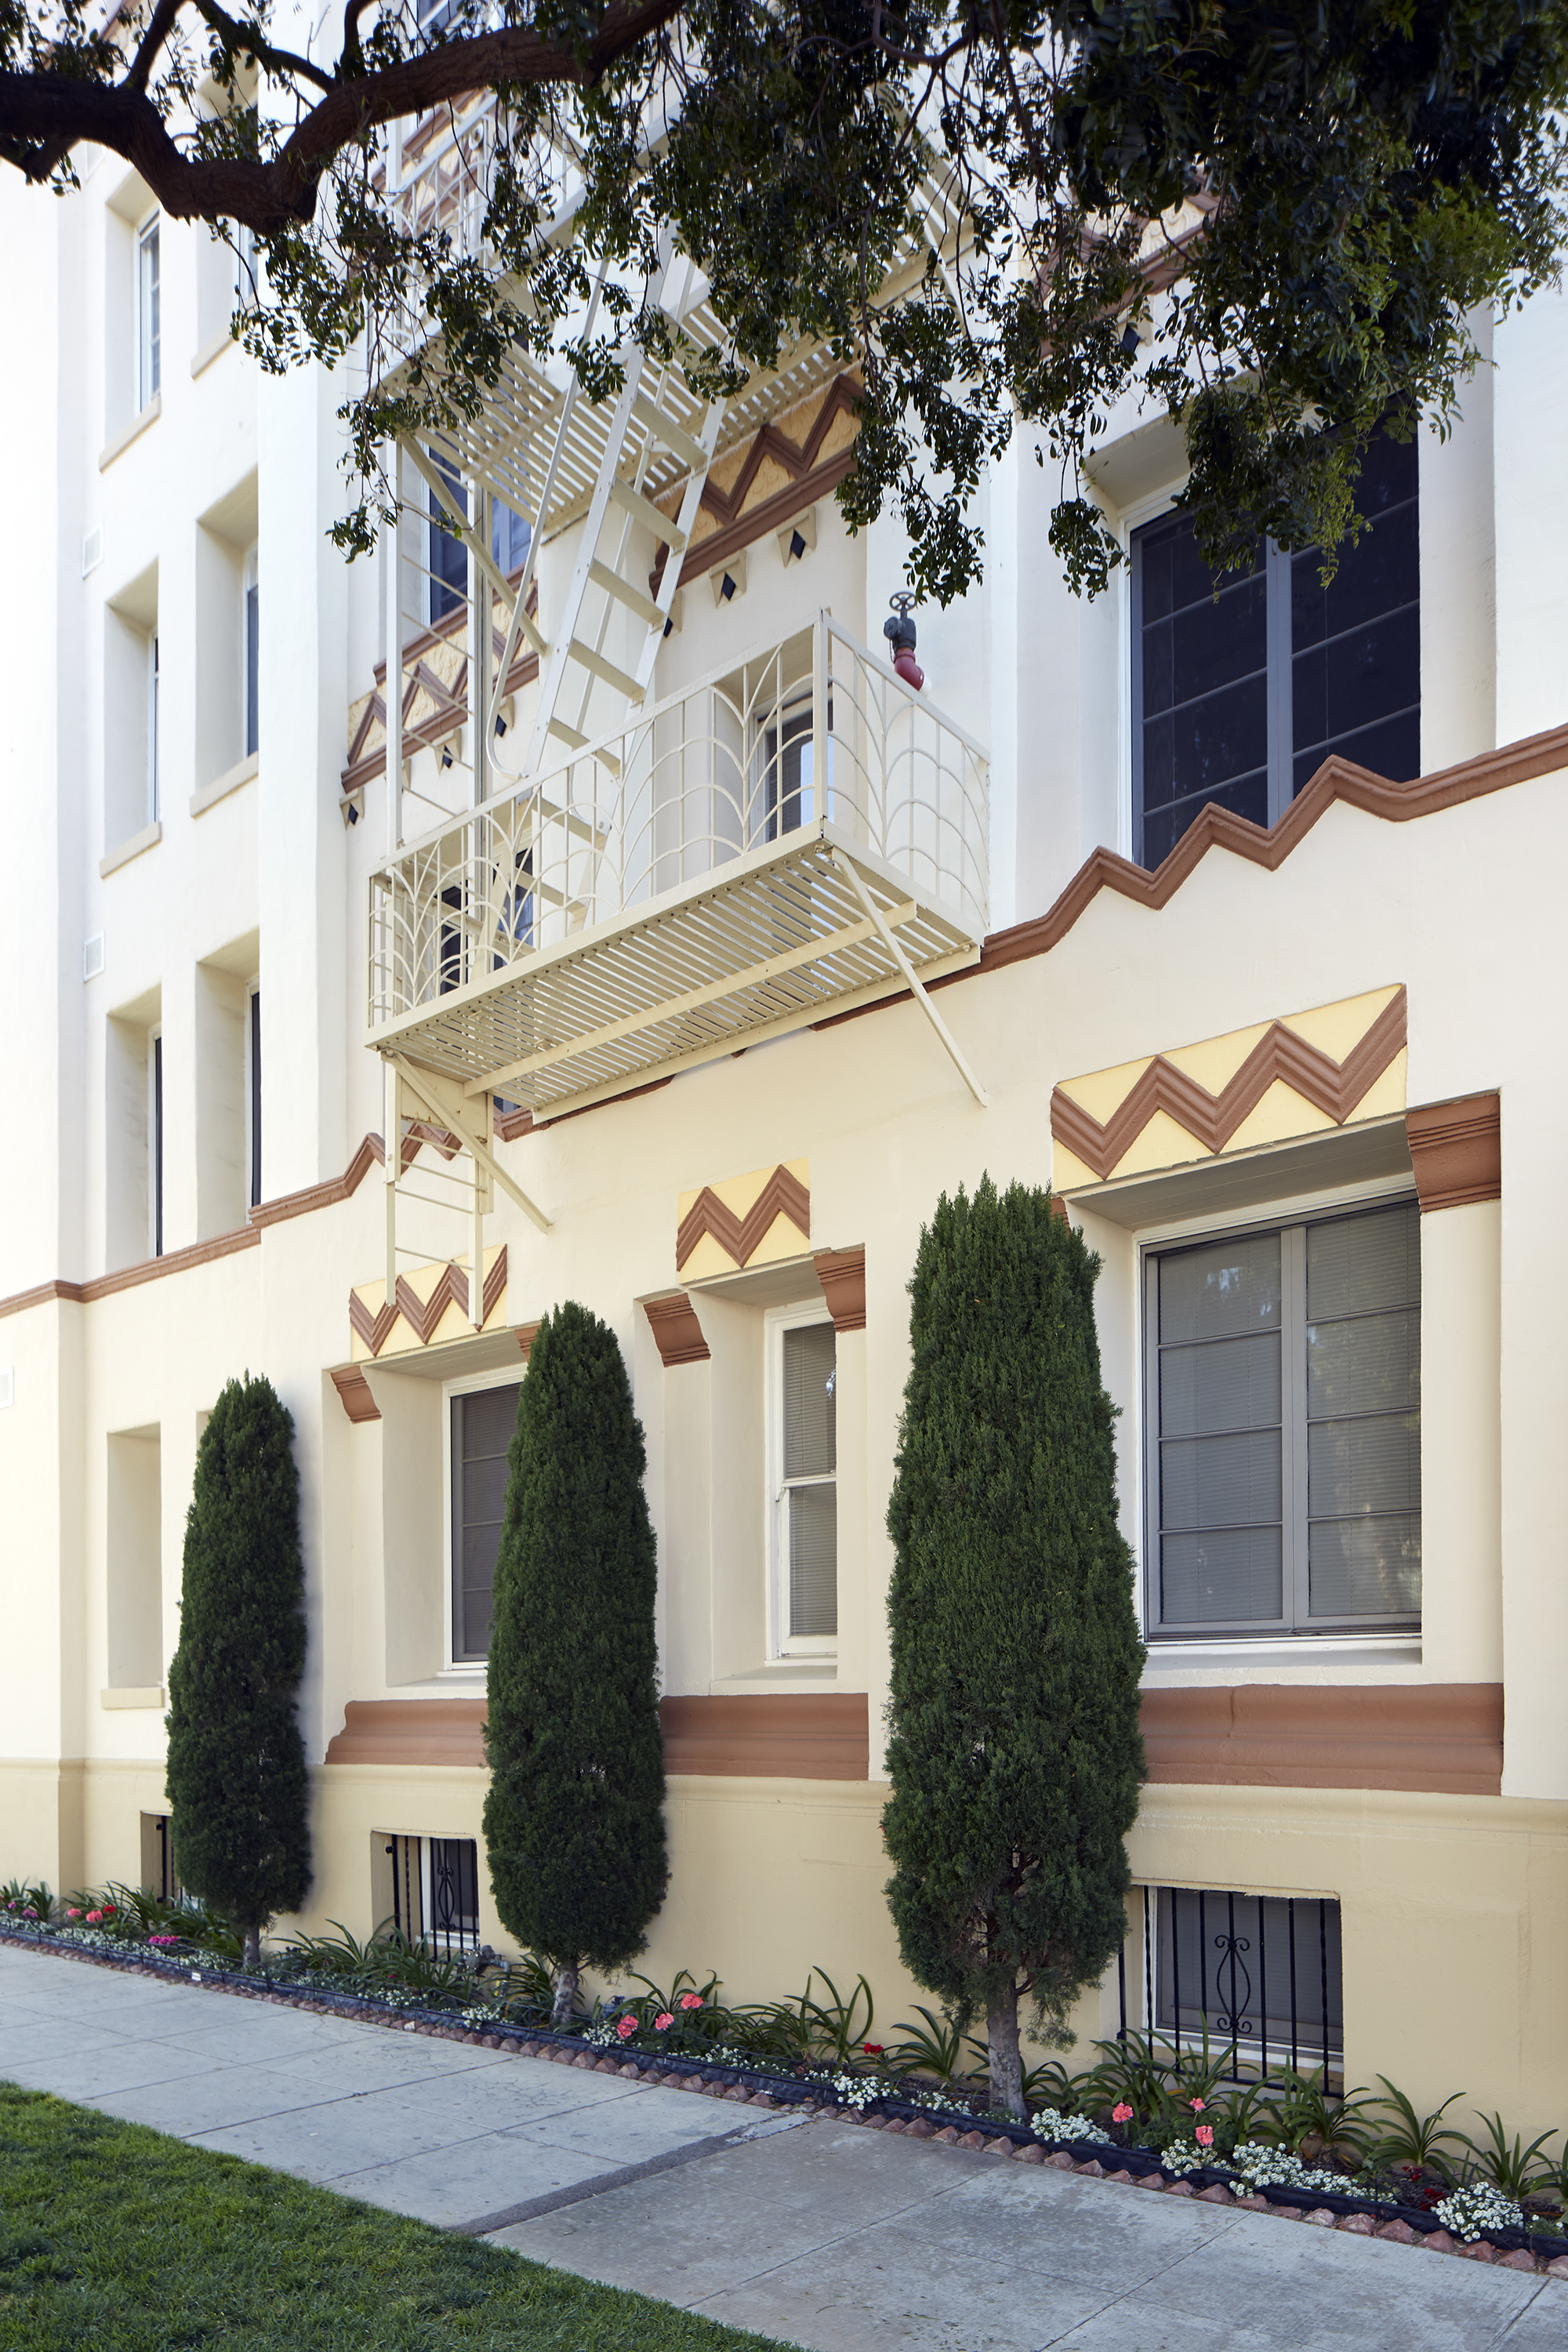 An older apartment building in pristine shape. It's painted in various shades of cream with a brown zig zag motif and a fire escape painted white. Three manicured juniper bushes front the building.